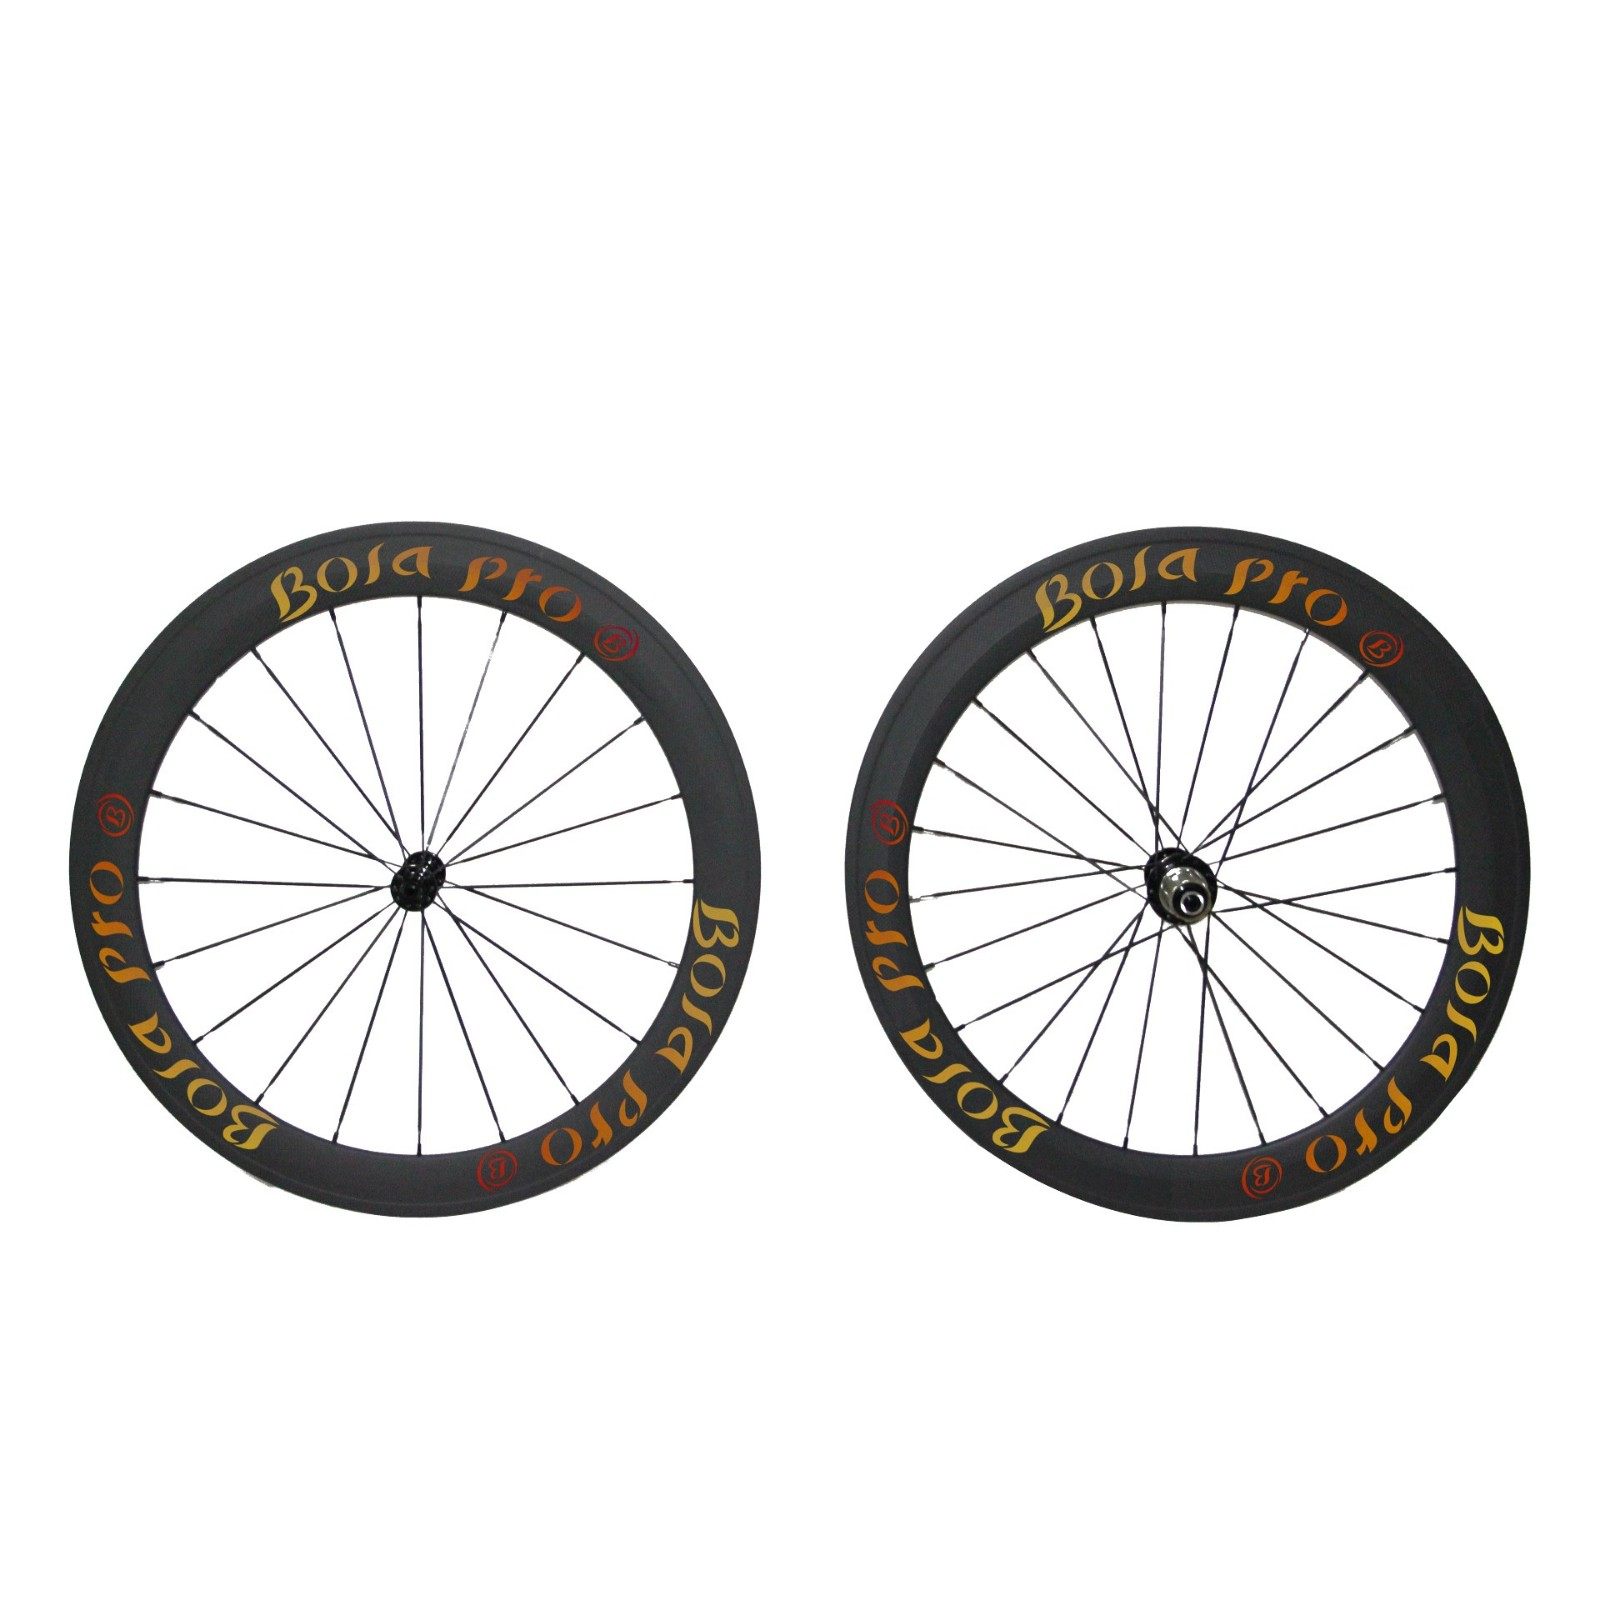 700C 55mm carbon track wheelset